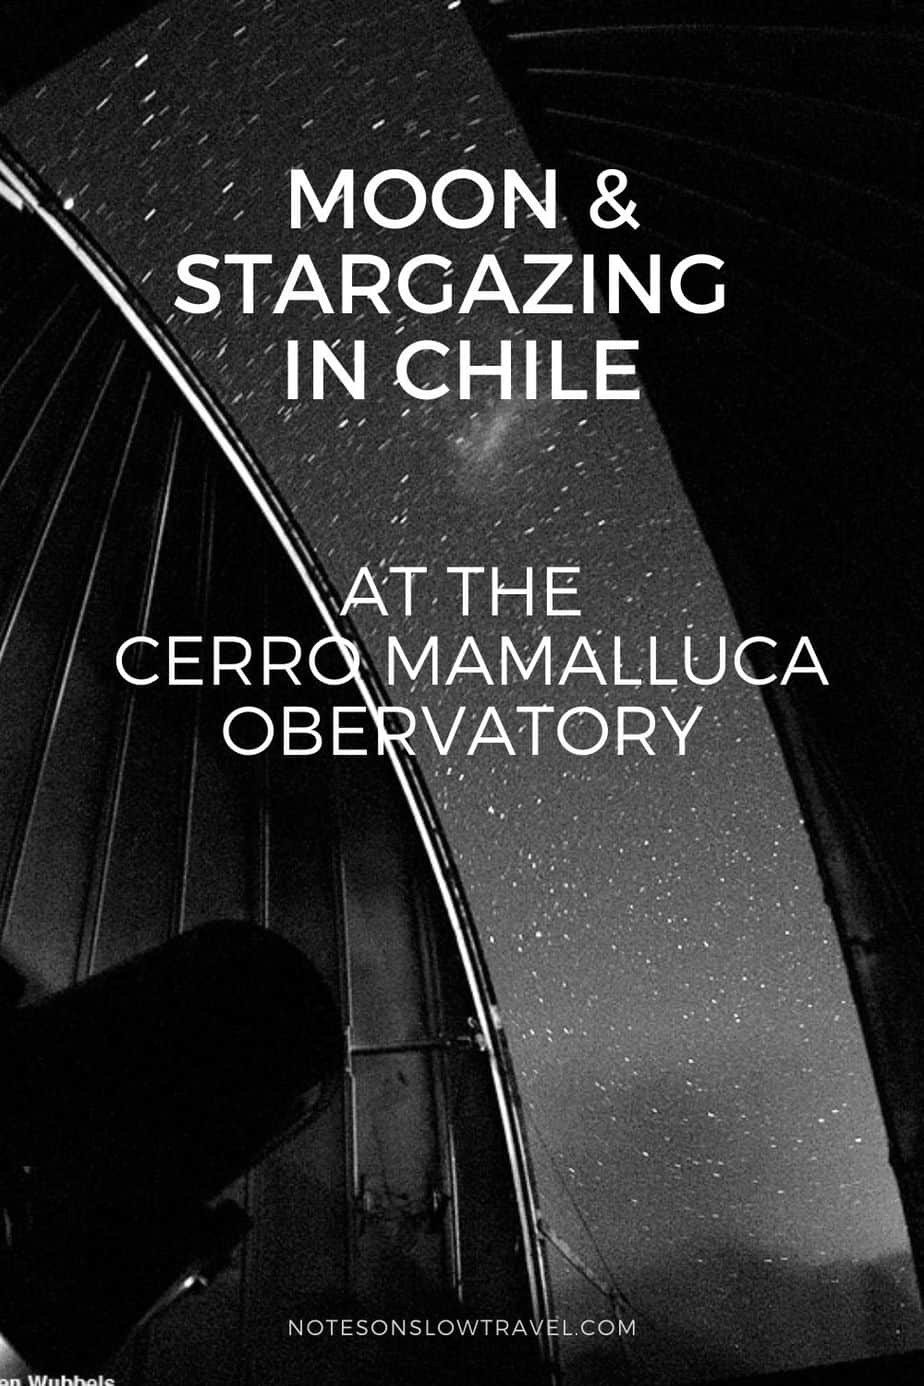 Stargazing at Cerro Mamalluca in Chile